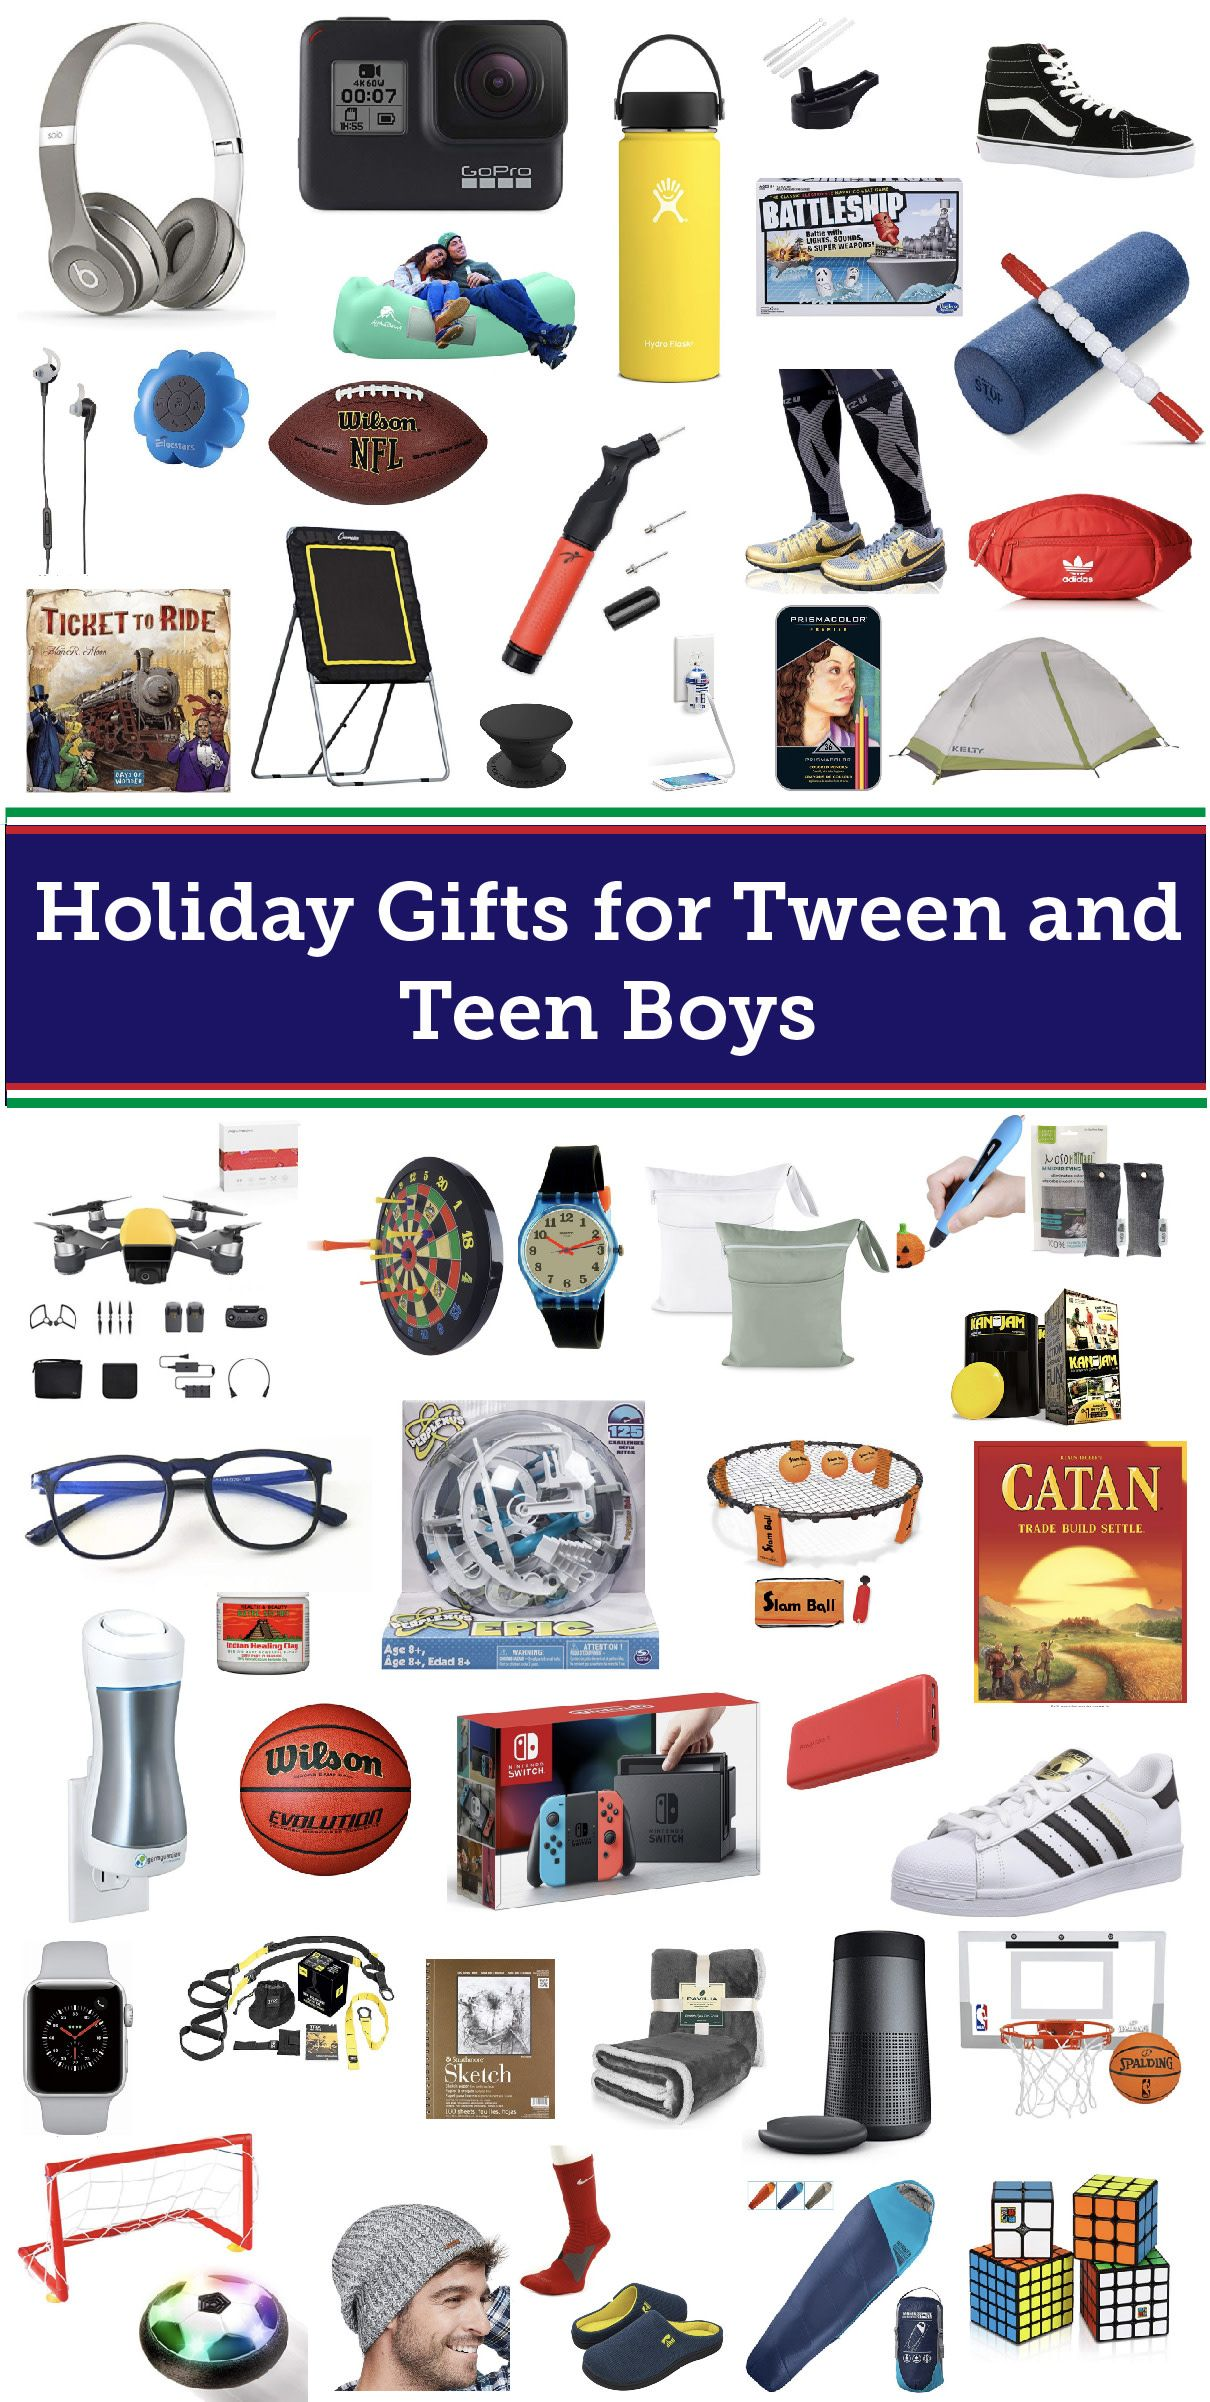 Best Gifts for Tween and Teen Boys in 2018